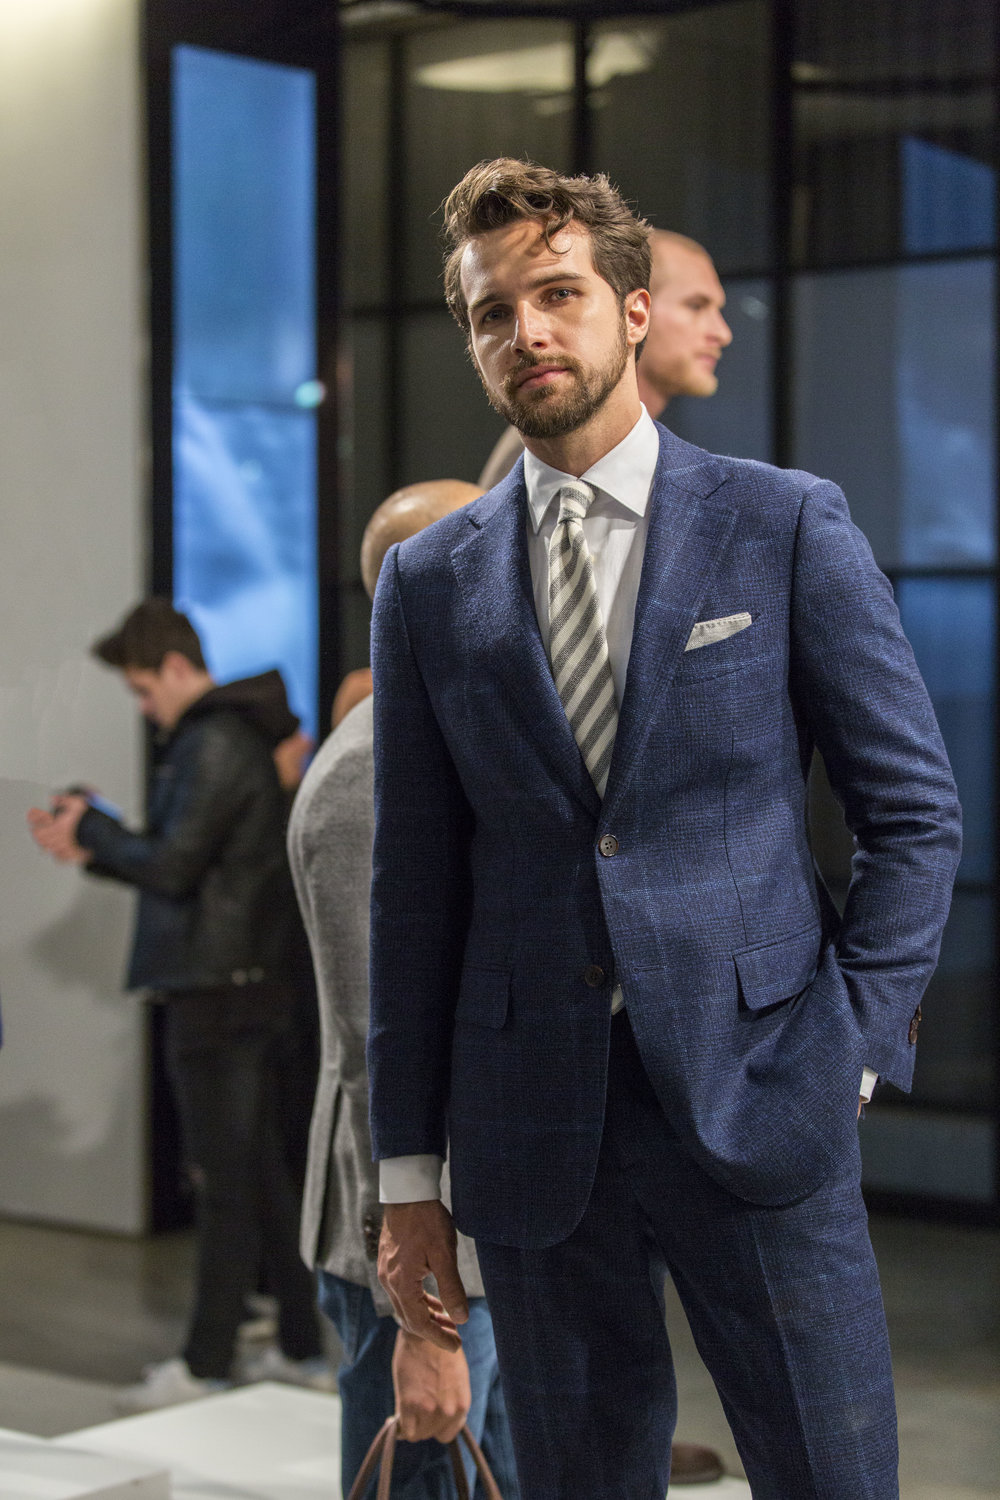 SUITSUPPLY-FALL -WINTER-NYFWM2018-MENS-COLLECTION- AW18-NYFWM-7.jpg